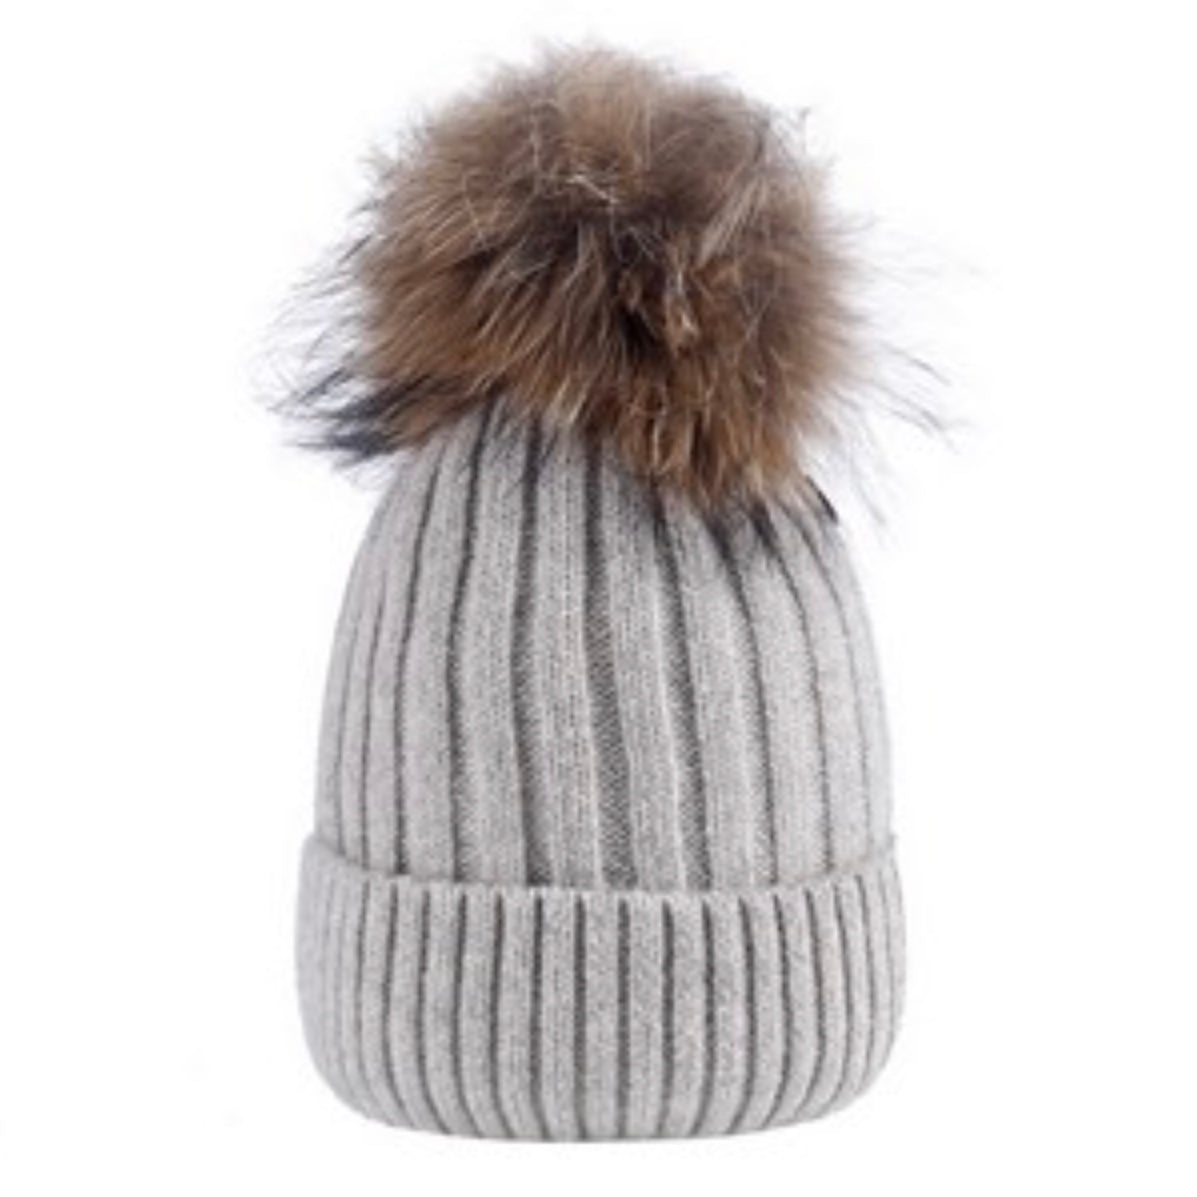 Grey Wool Hat with Racoon Fur Pom Pom | Putti Fine Fashions